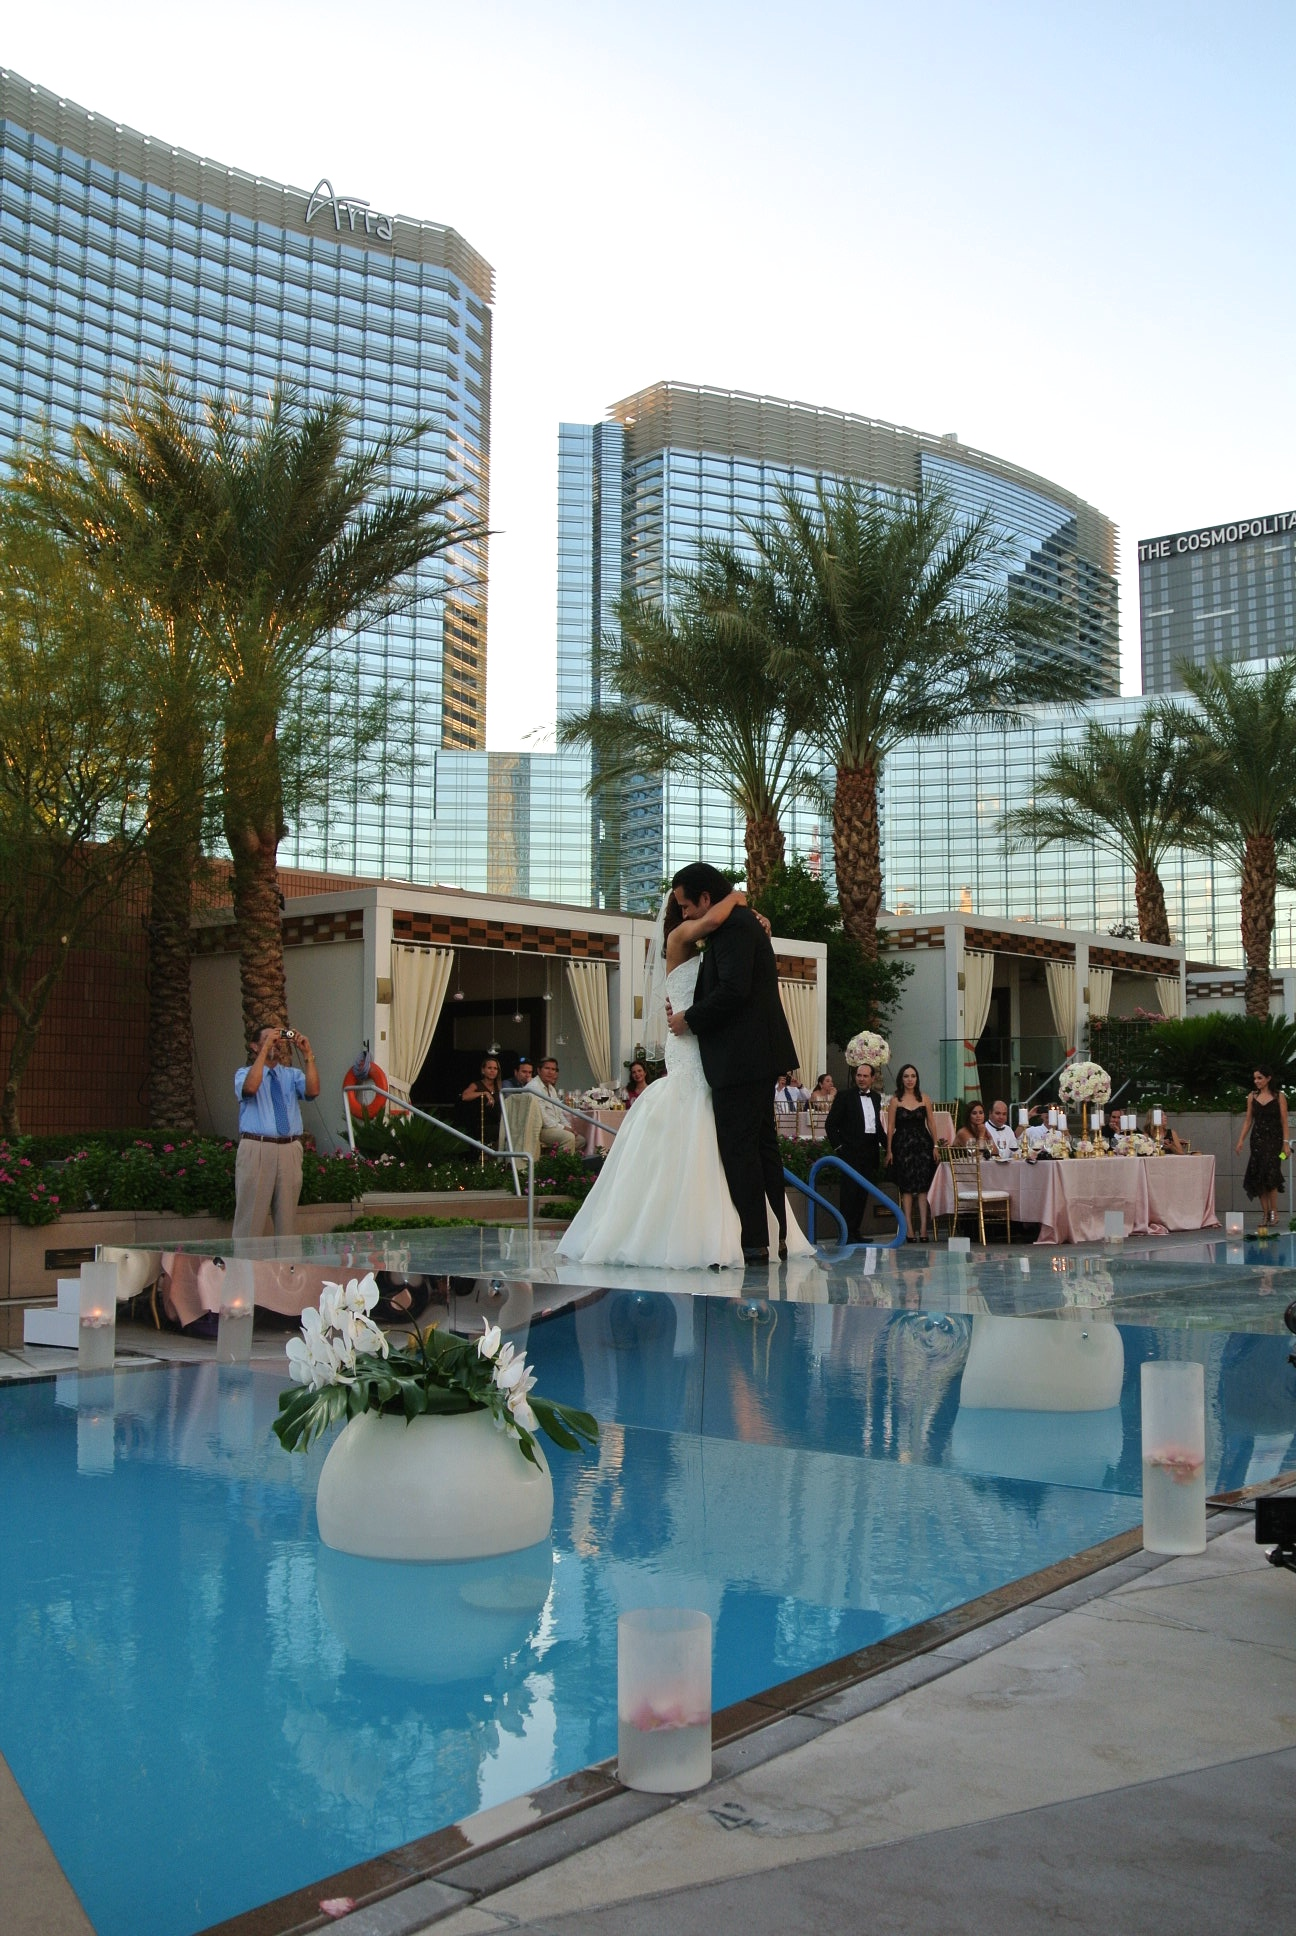 The bride and groom were announced, and took their place on the glass topped bridge, enjoying their first dance as husband and wife surrounded by friends, family, florals, and the stunning Vegas skyline.   Las Vegas Wedding Planner:    Andrea Eppolito Events    |  Wedding Venue:    Mandarin Oriental Las Vegas